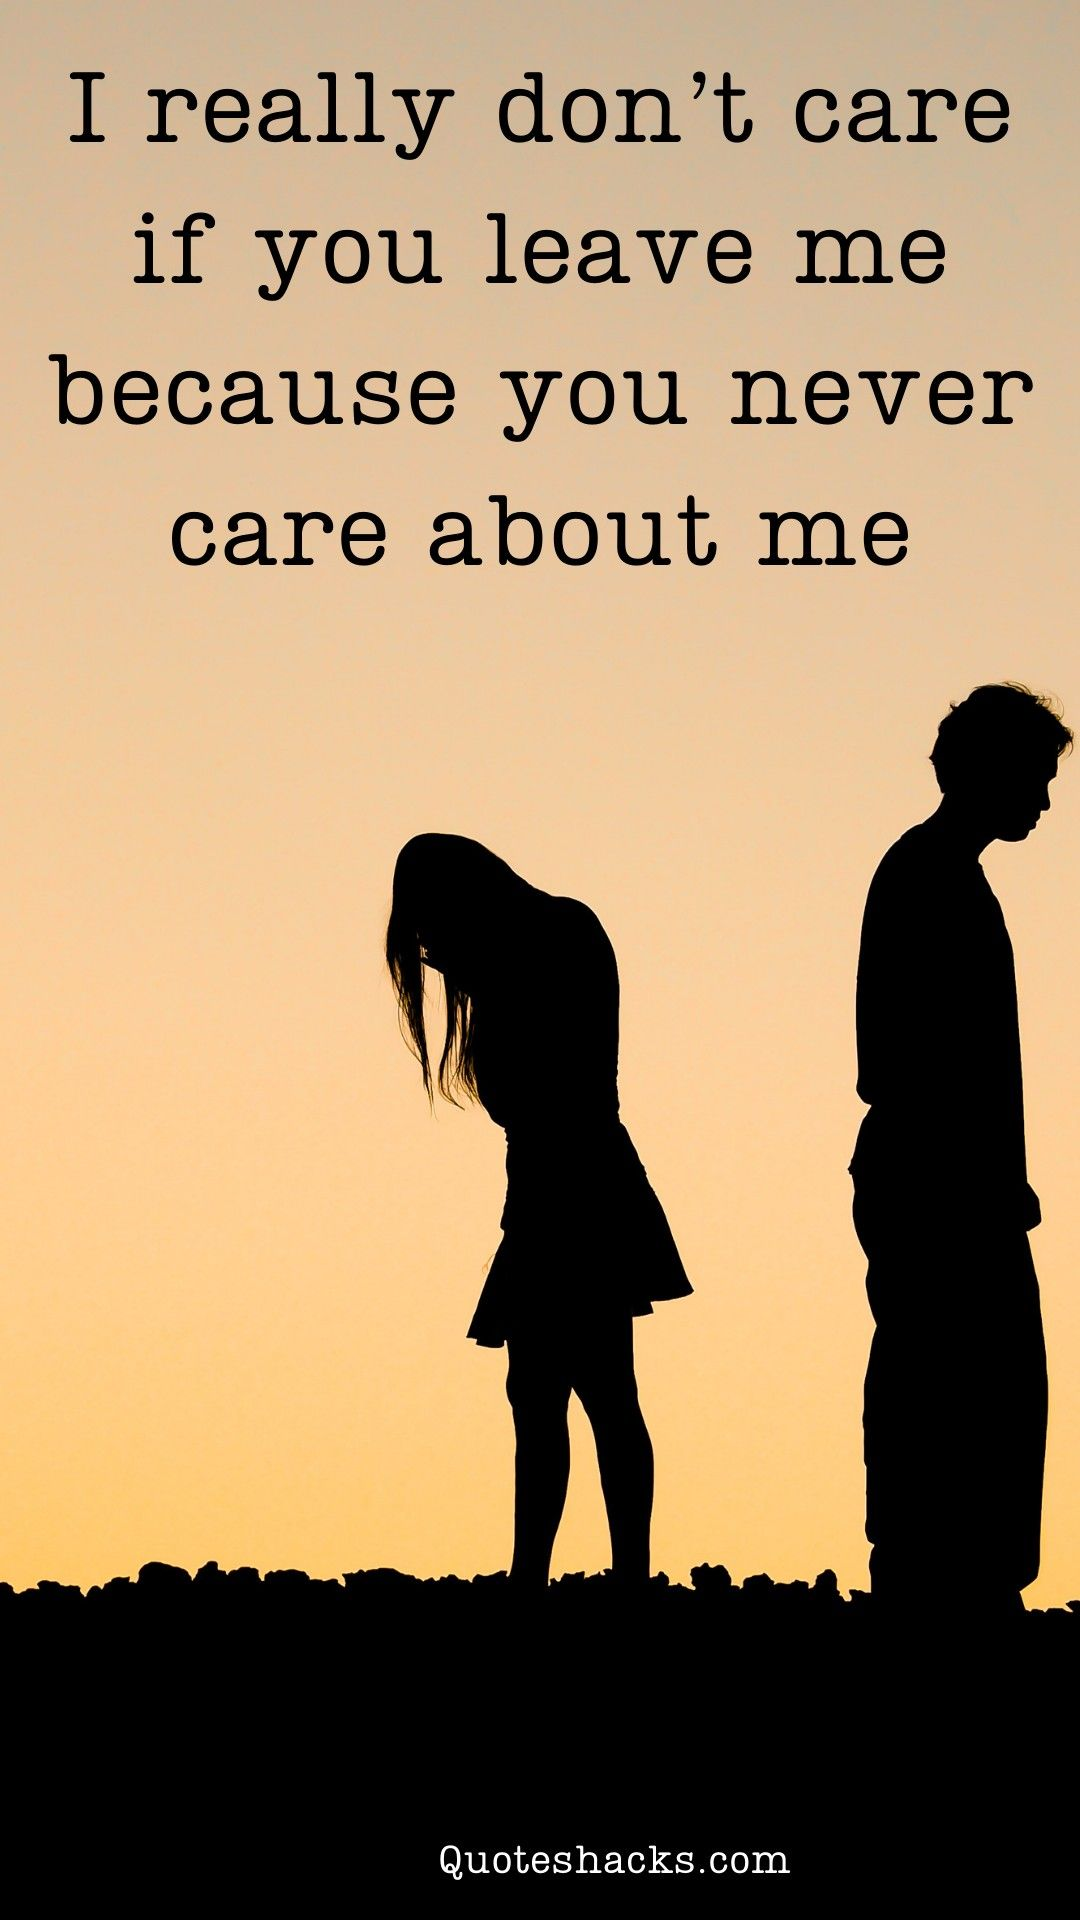 how to stop caring about someone who doesn't care about me